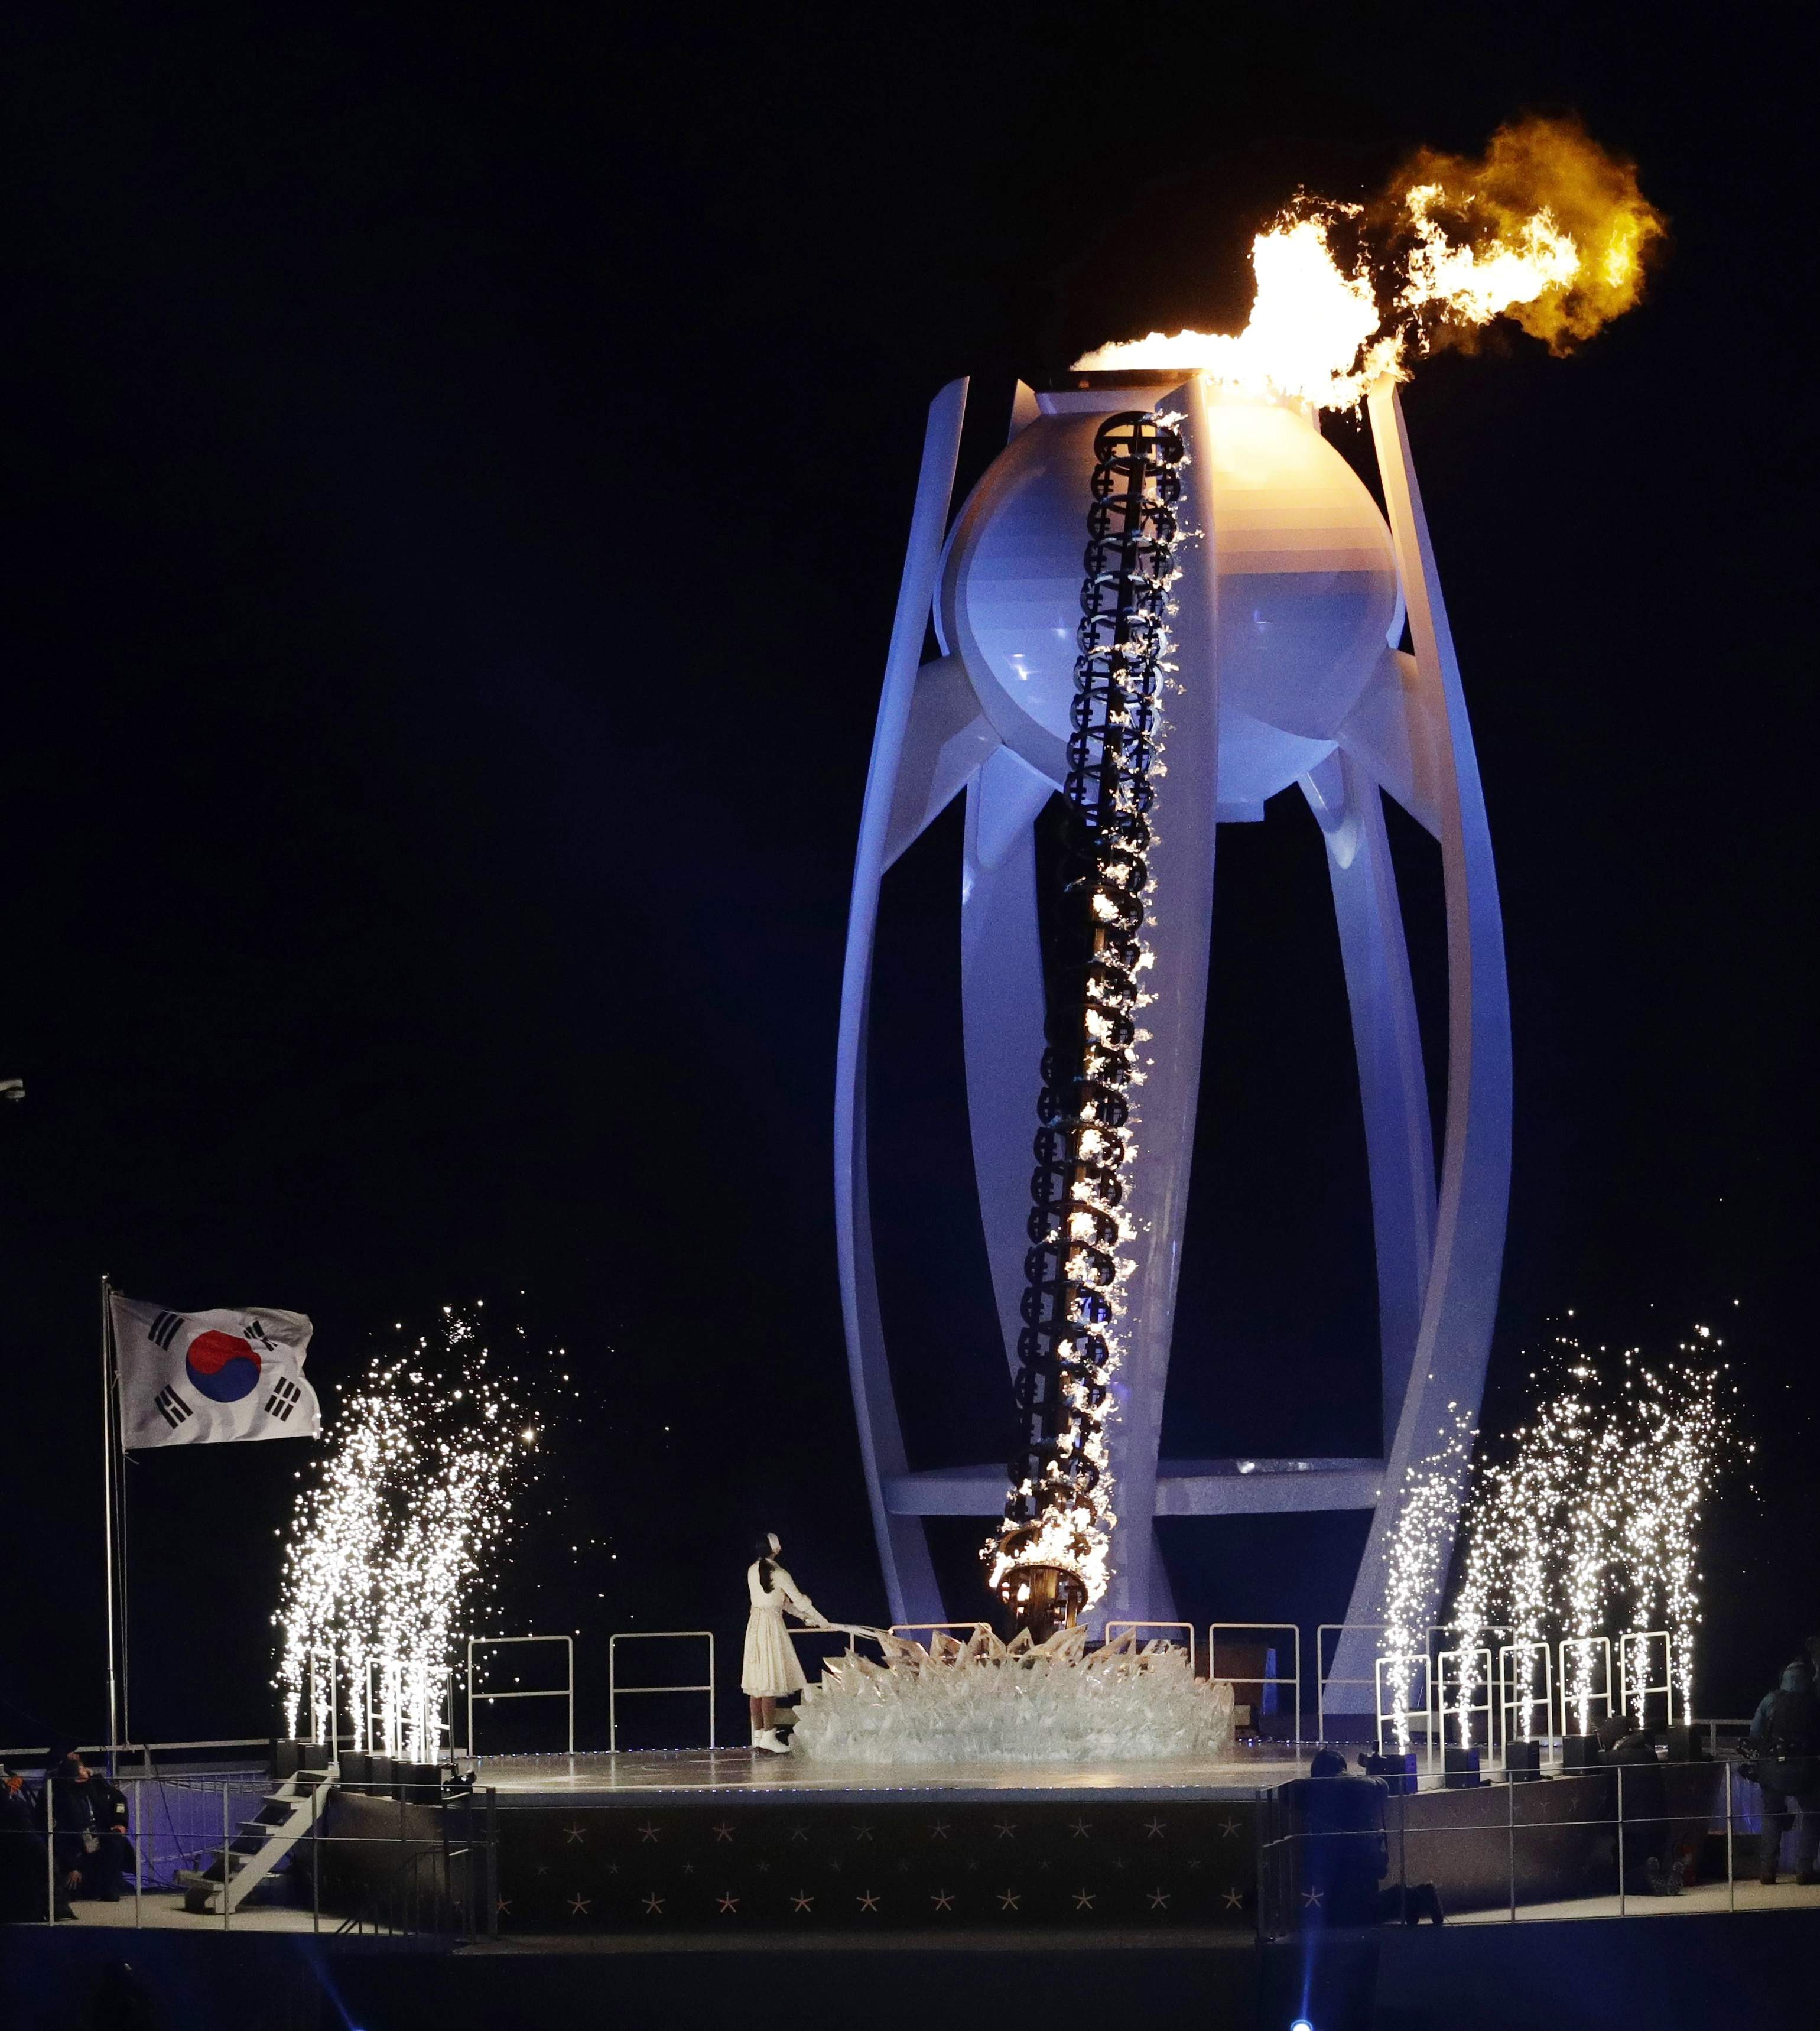 Yuna Kim, former South Korean figure skater lights the Olympic cauldron during the opening ceremony of the 2018 Winter Olympics in Pyeongchang, South Korea, Friday, Feb. 9, 2018. (AP Photo/Charlie Riedel)